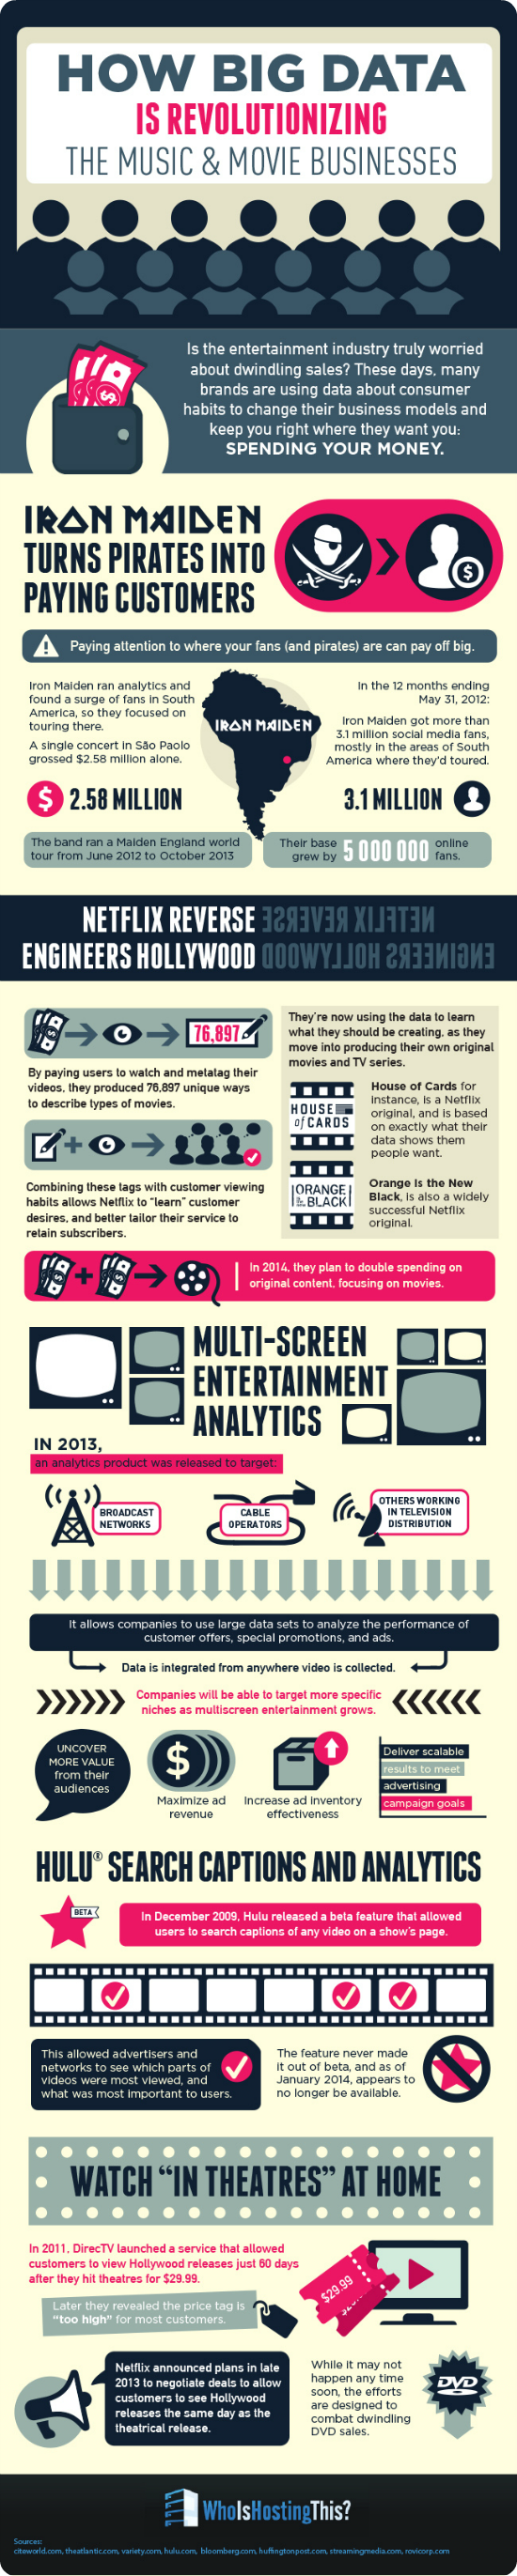 how big data is changing the music and movie business